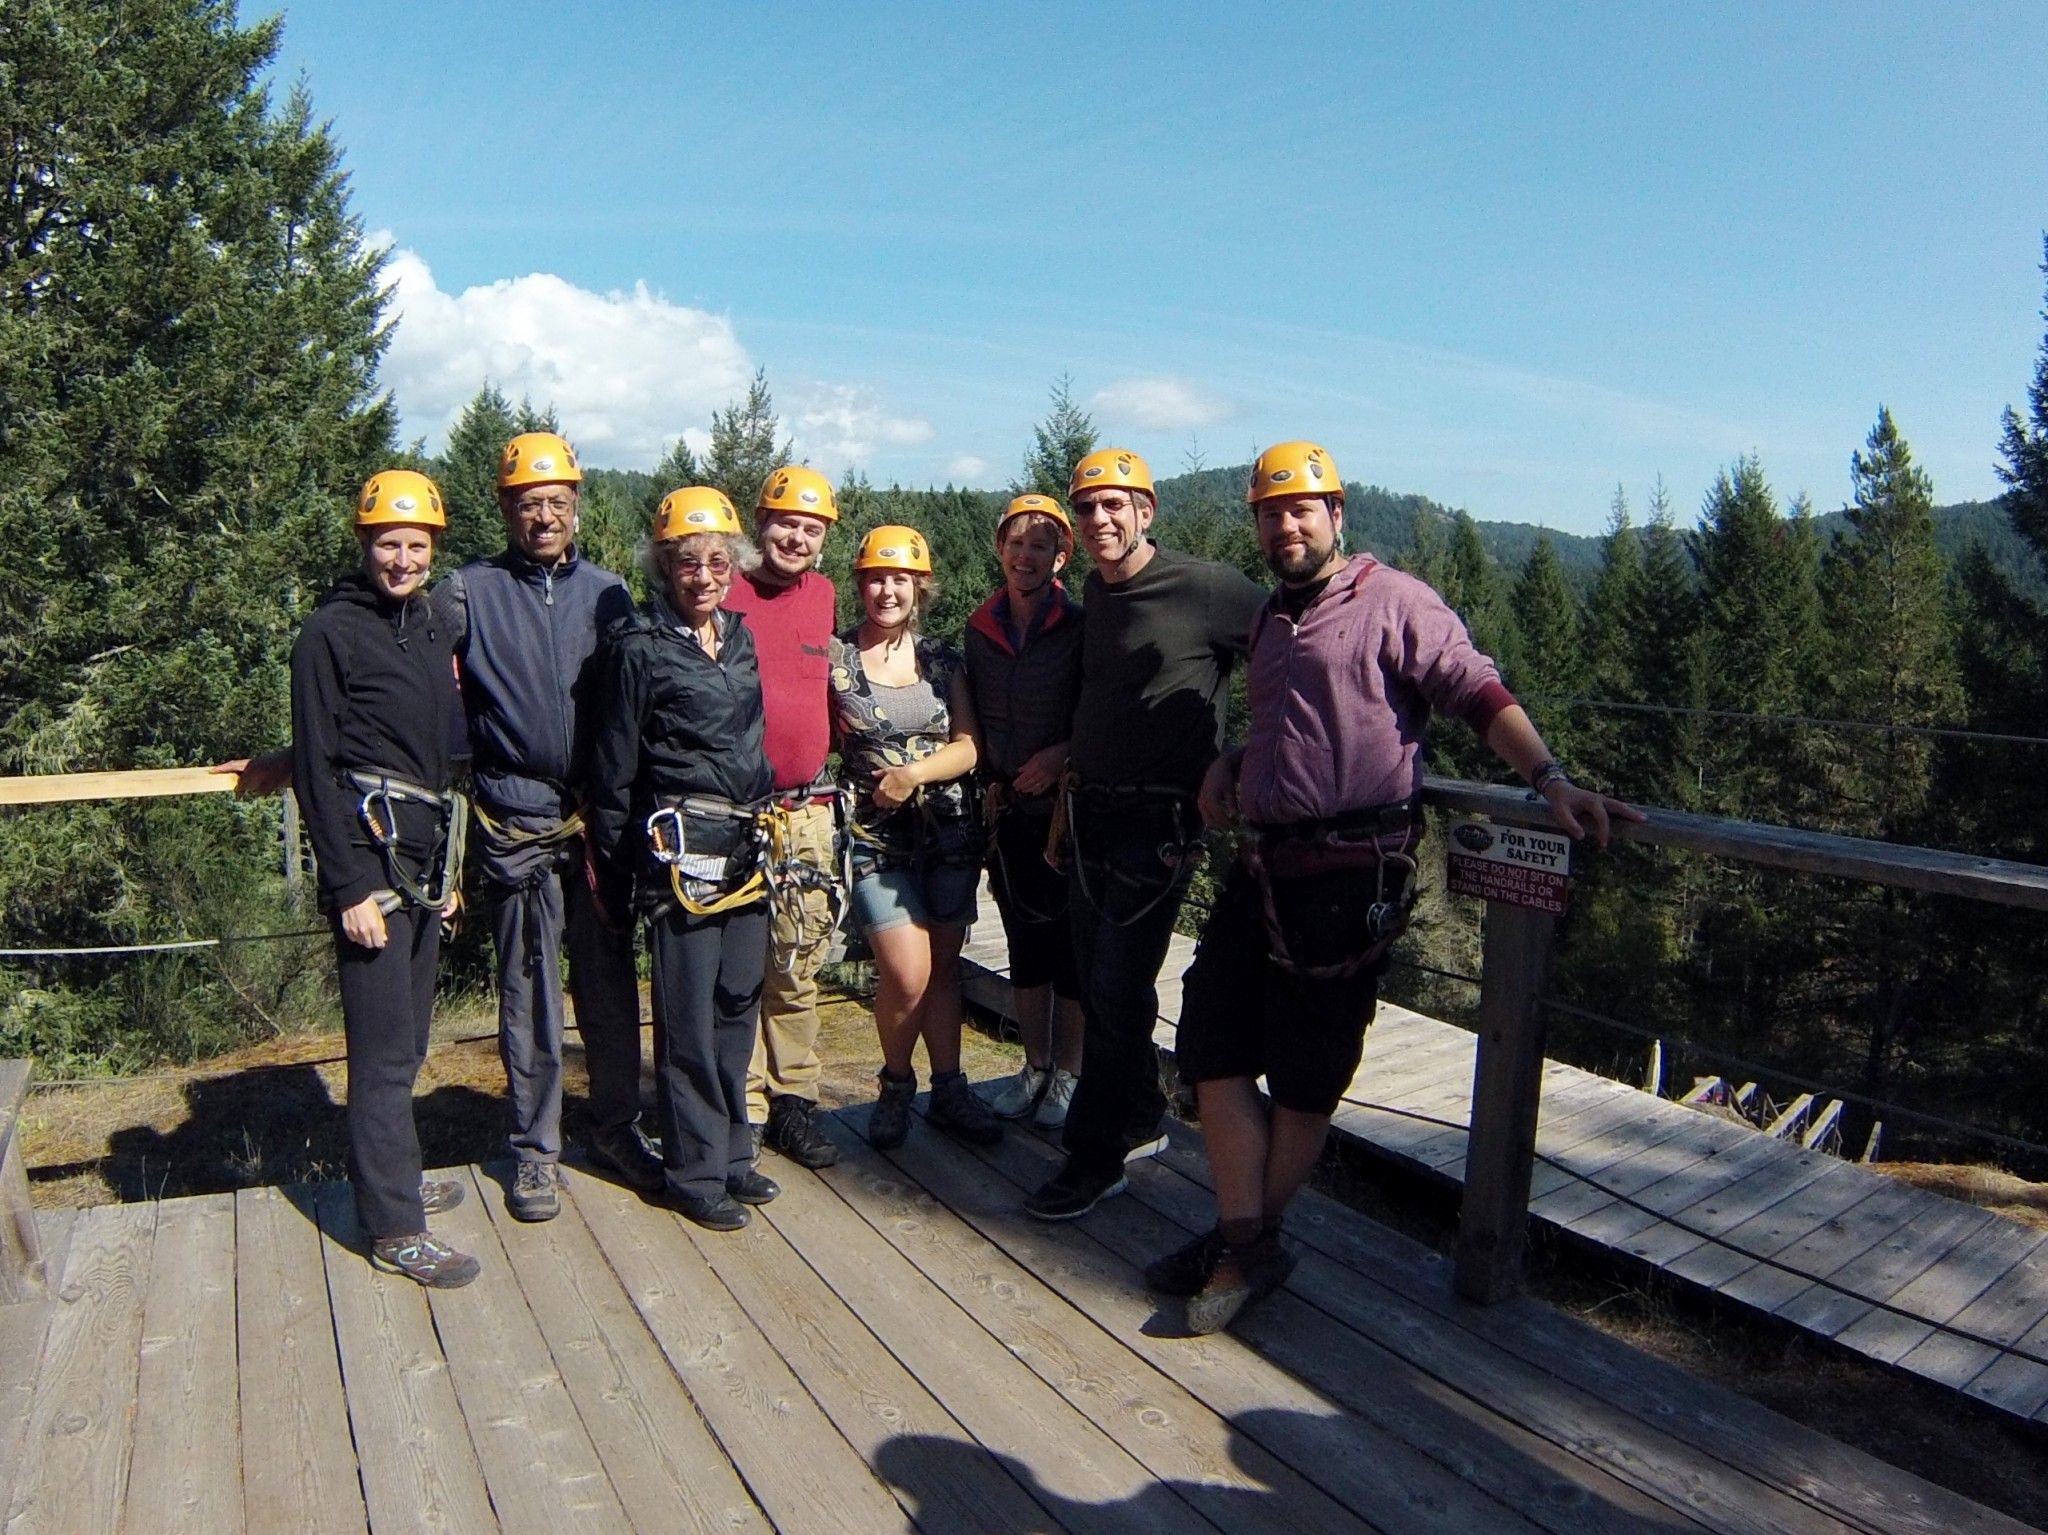 Ziplining group